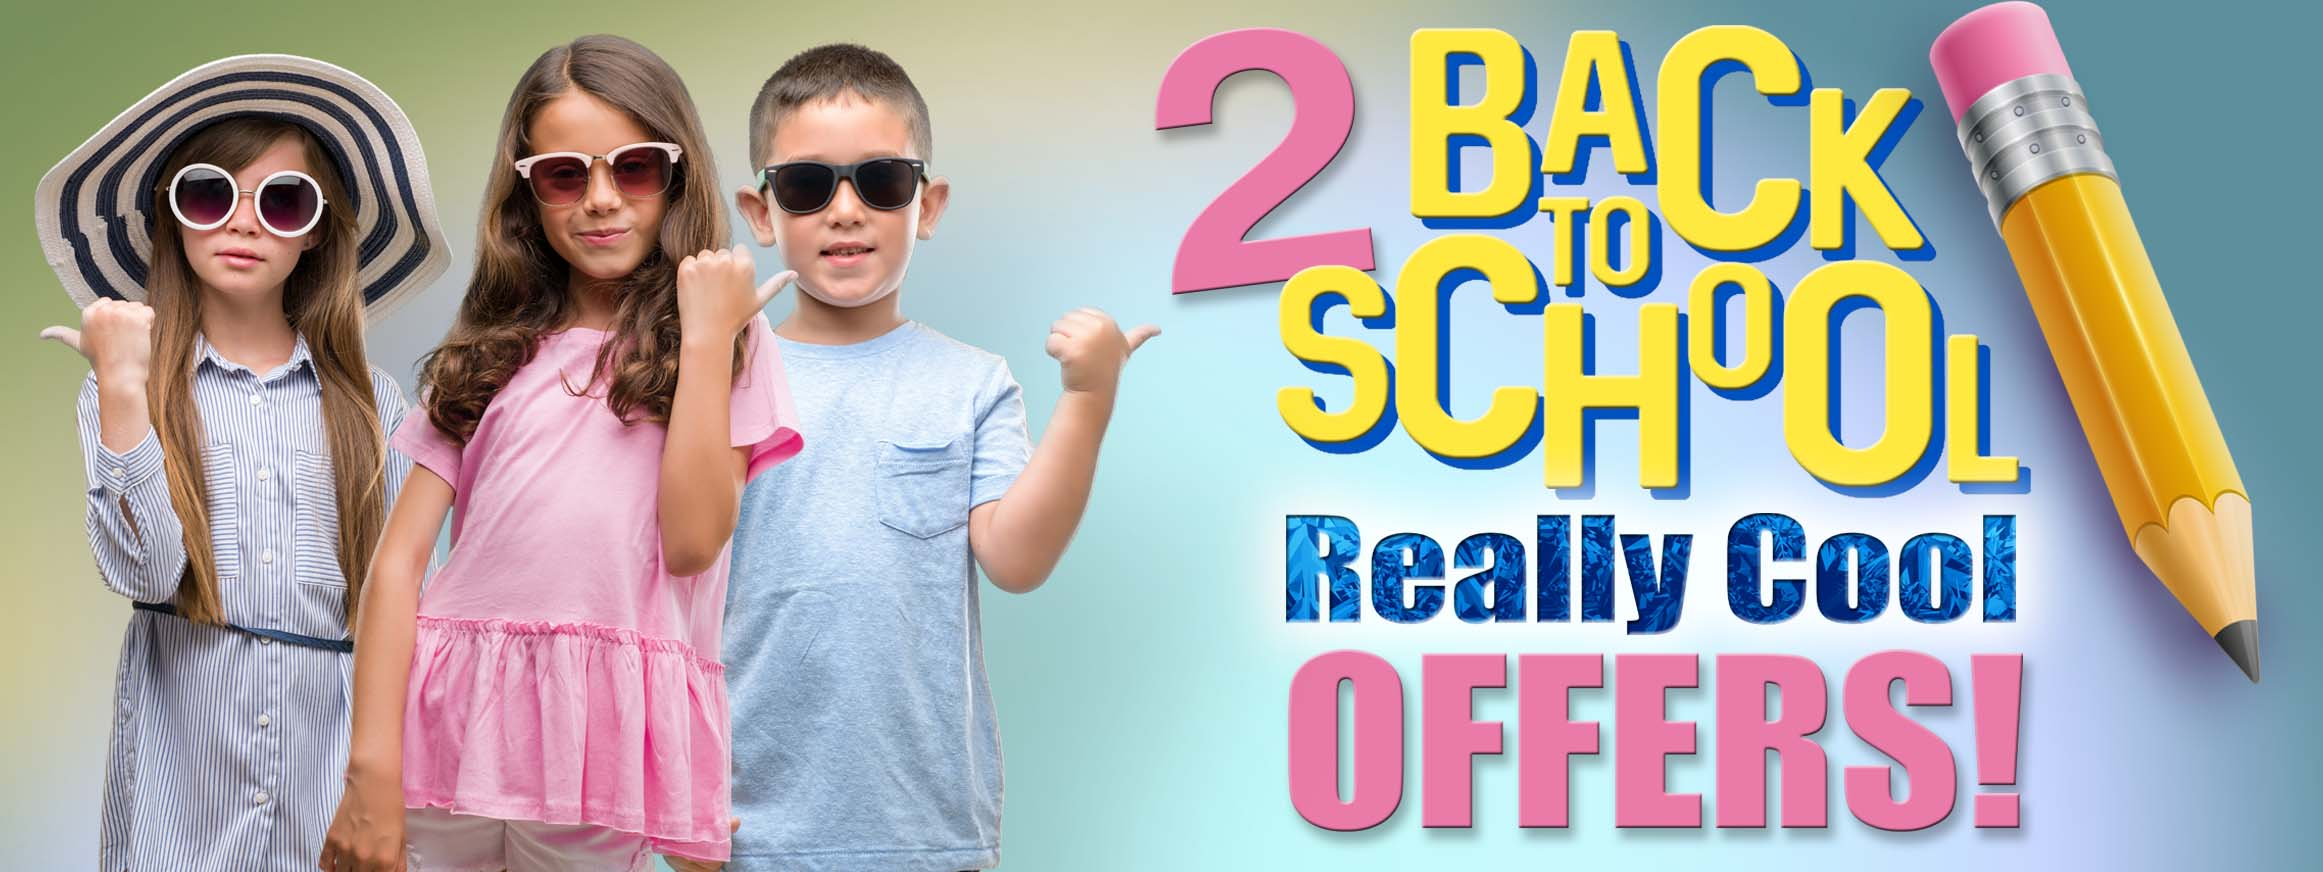 back to school 2 offers large button